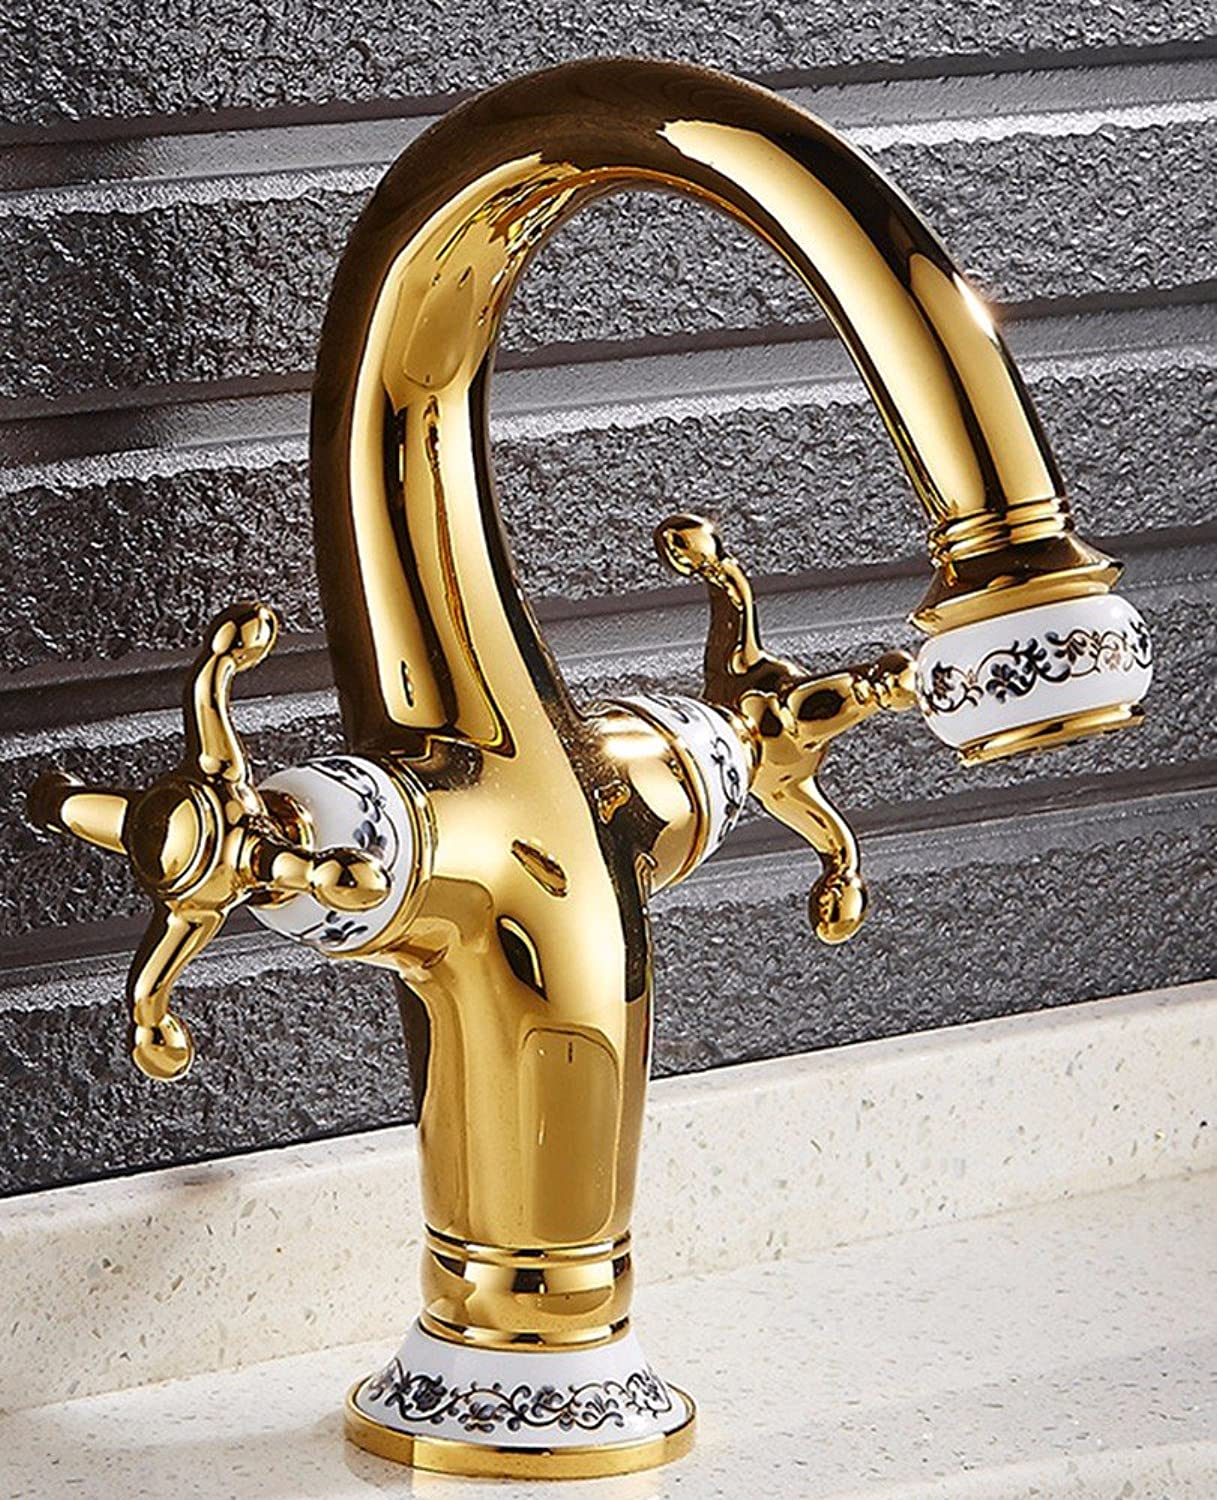 Hlluya Professional Sink Mixer Tap Kitchen Faucet Brass, gold plated, basin, Single, Double, hot and cold water faucets, 1